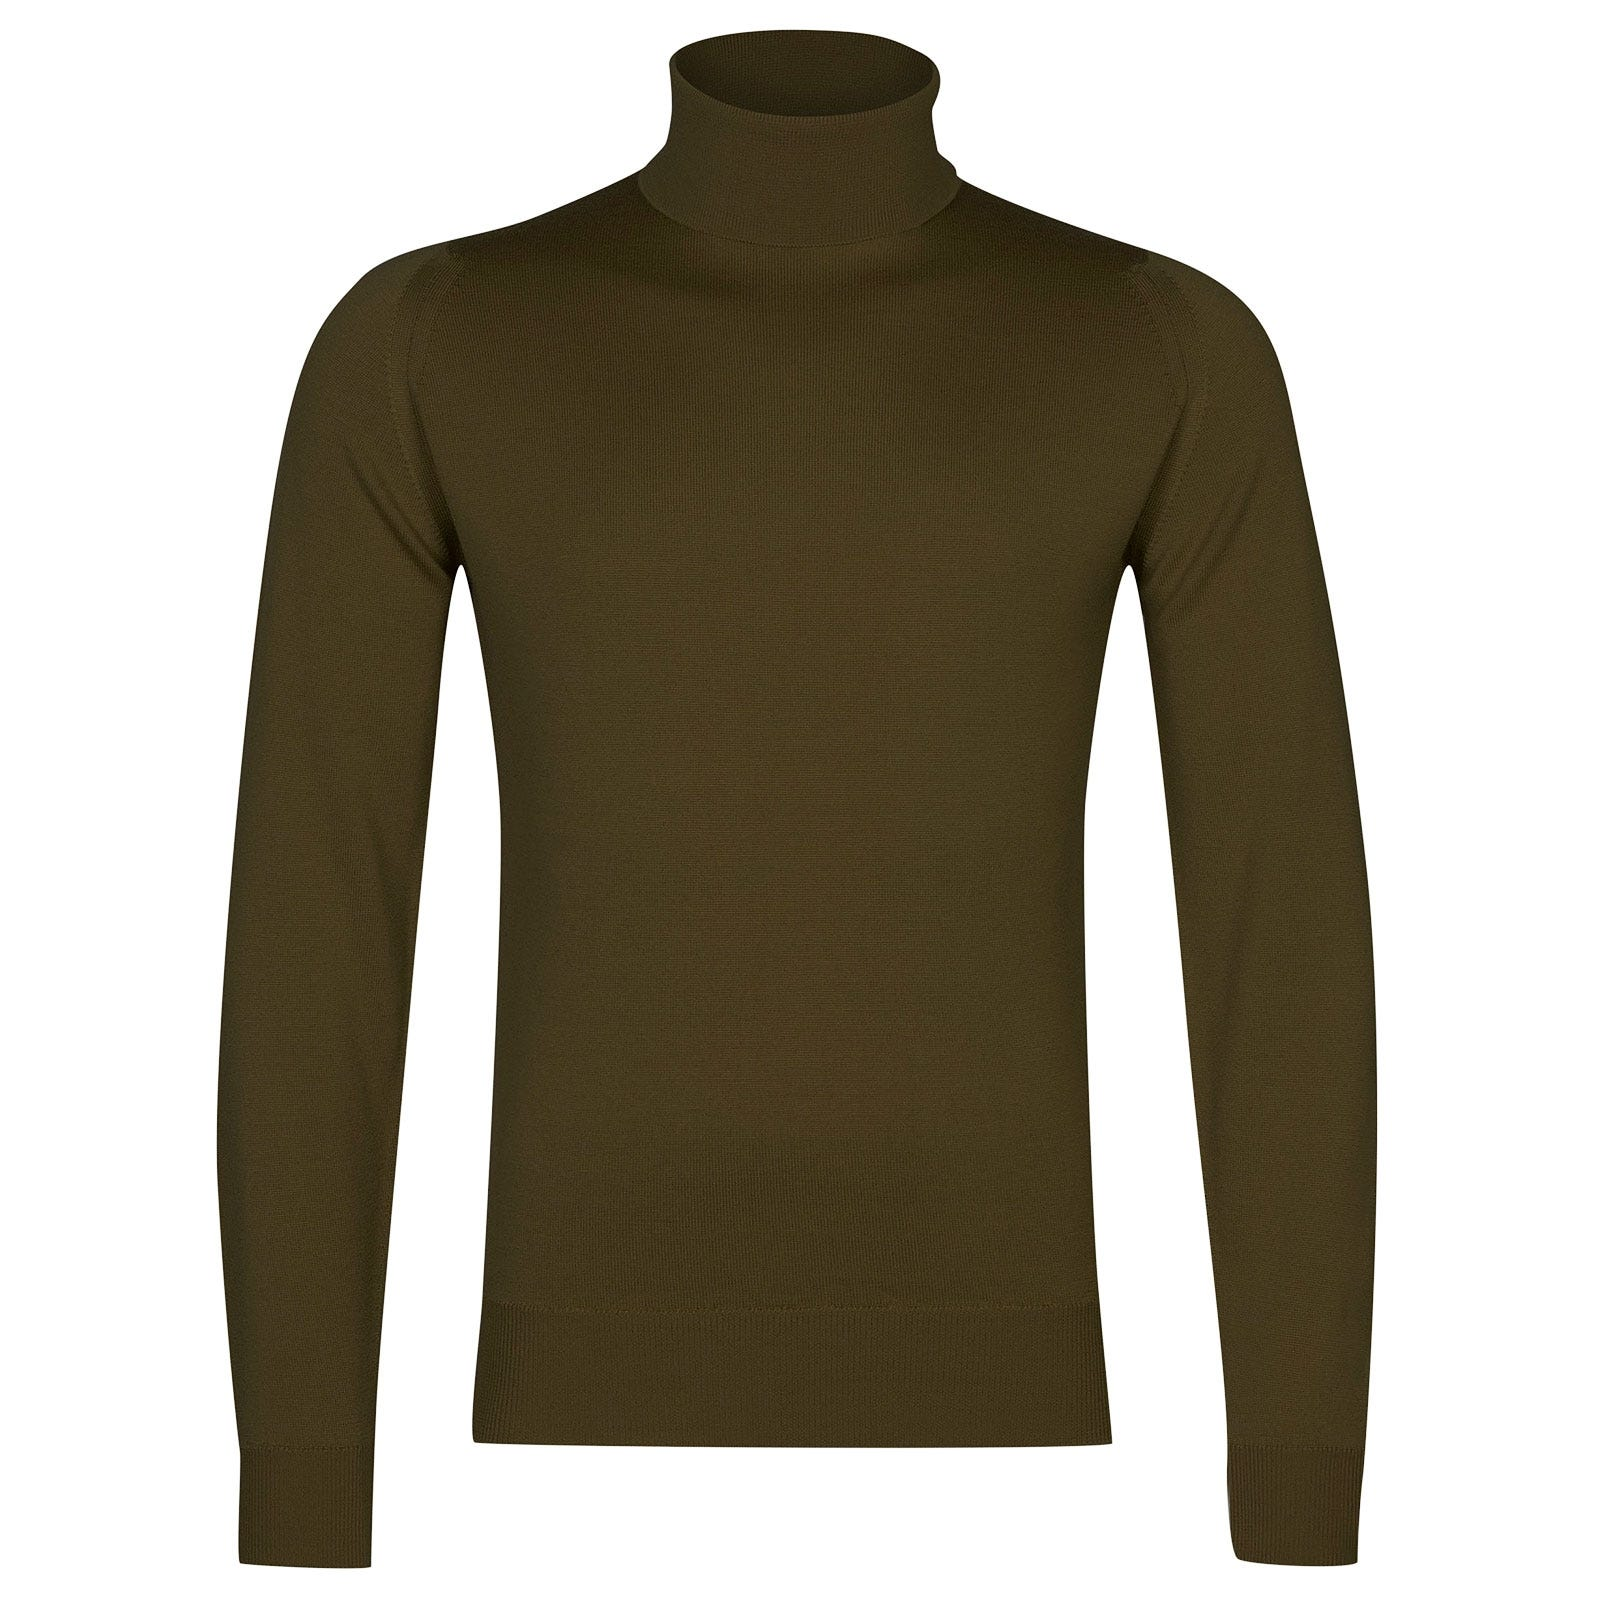 John Smedley Connell Merino Wool Pullover in Khaki-M